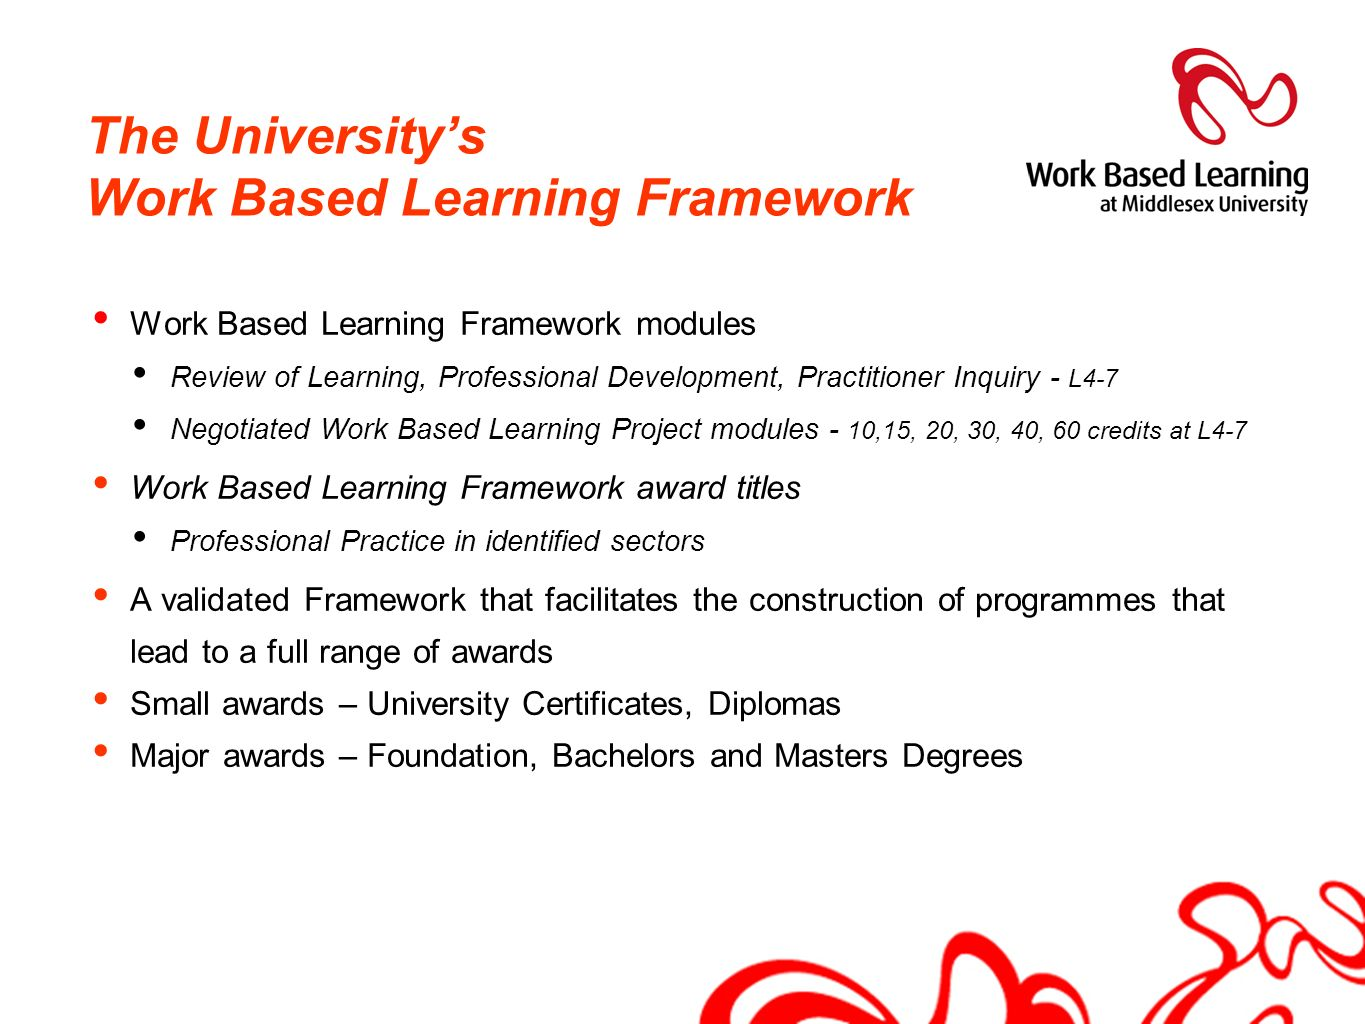 The University's Work Based Learning Framework